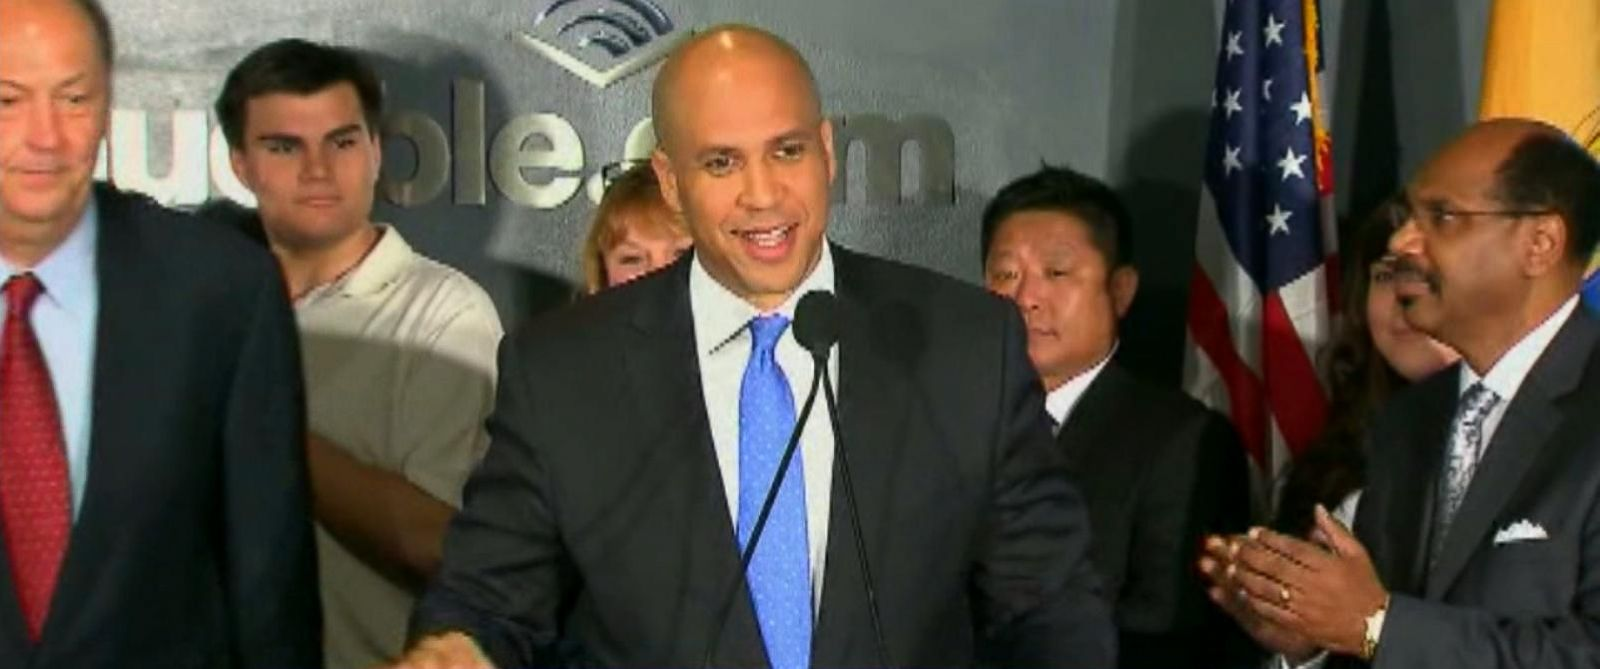 VIDEO: Police in Newark, New Jersey are stepping up their protection of Sen. Cory Booker after he and his family received a death threat, Newark mayor Ras Baraka said in a statement Saturday.